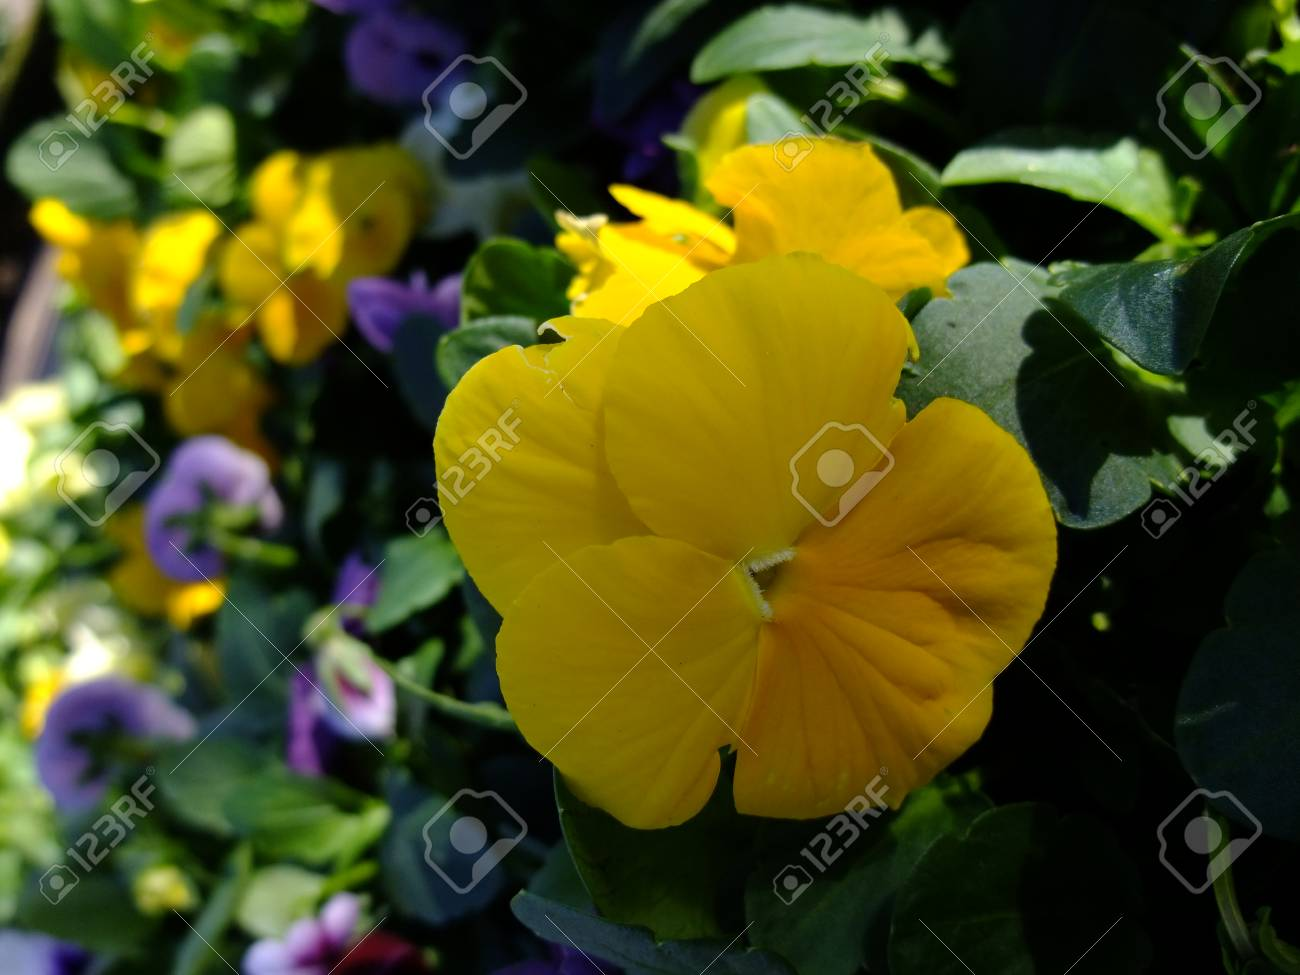 The most beautiful flower plants in western australia street stock stock photo the most beautiful flower plants in western australia street izmirmasajfo